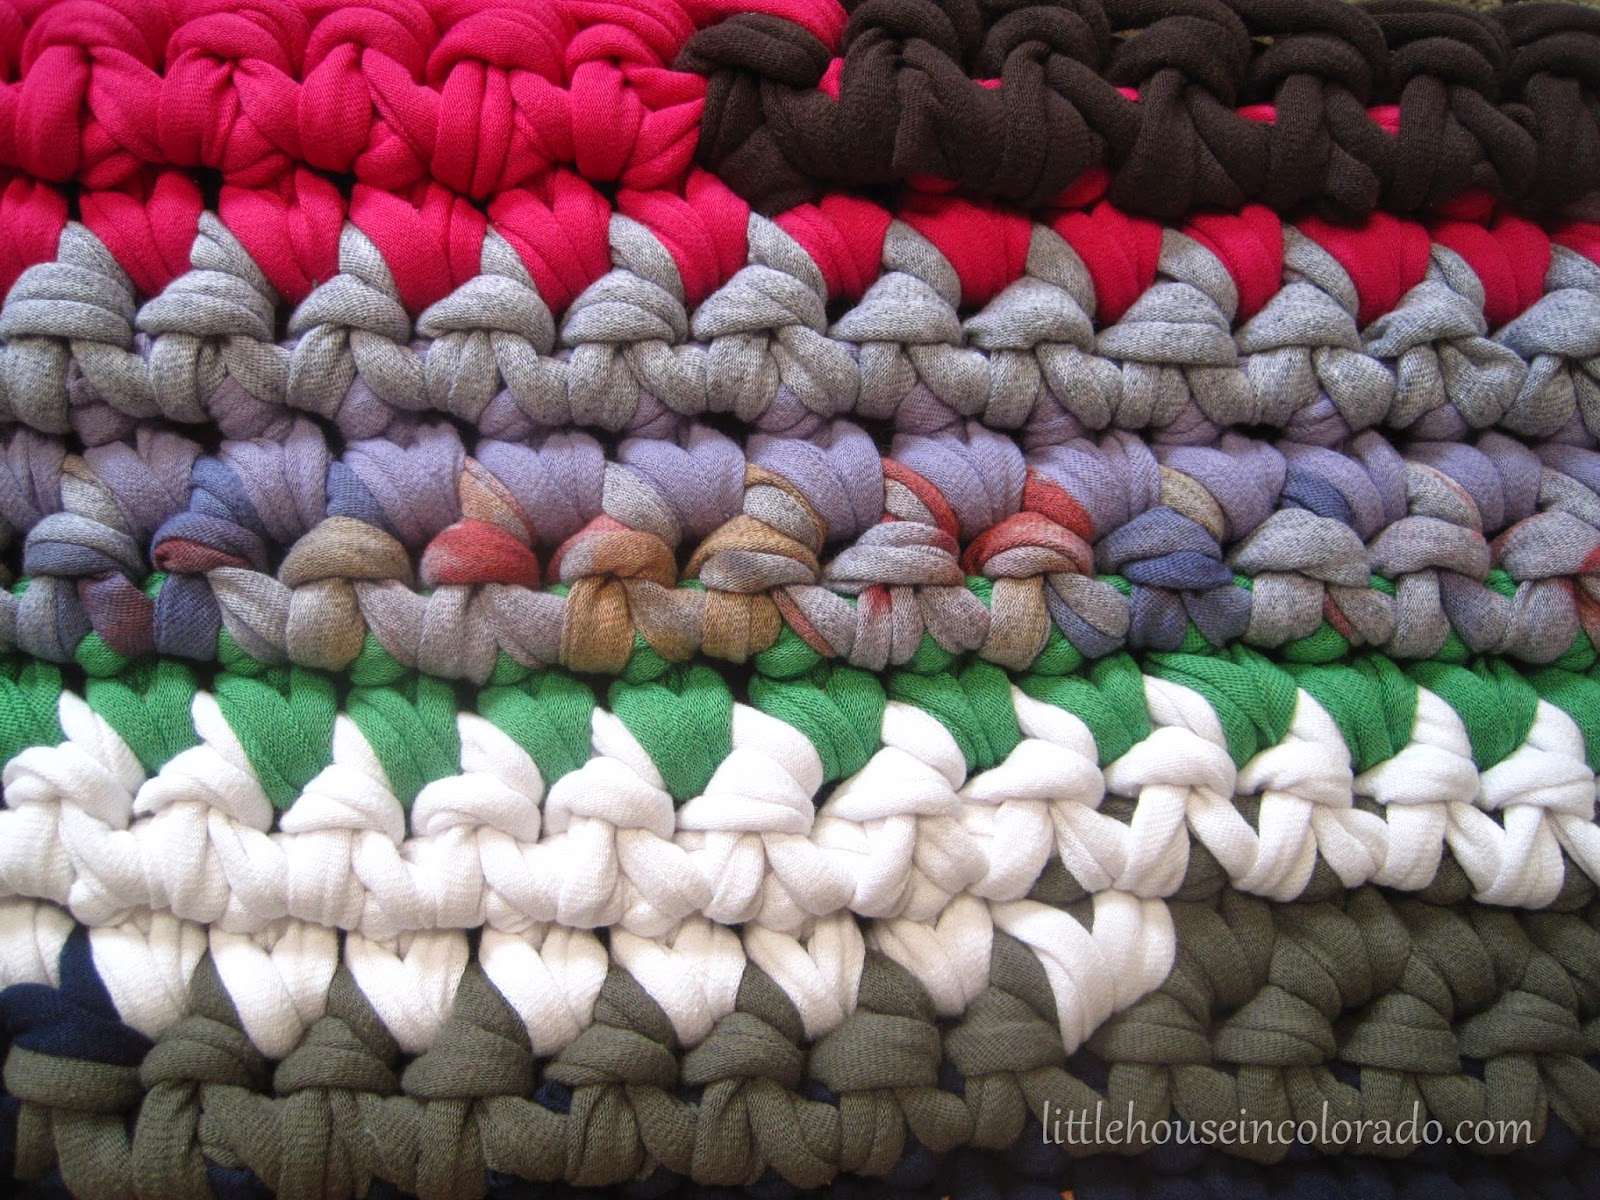 Little House In Colorado: Crochet A Recycled T-Shirt Rug